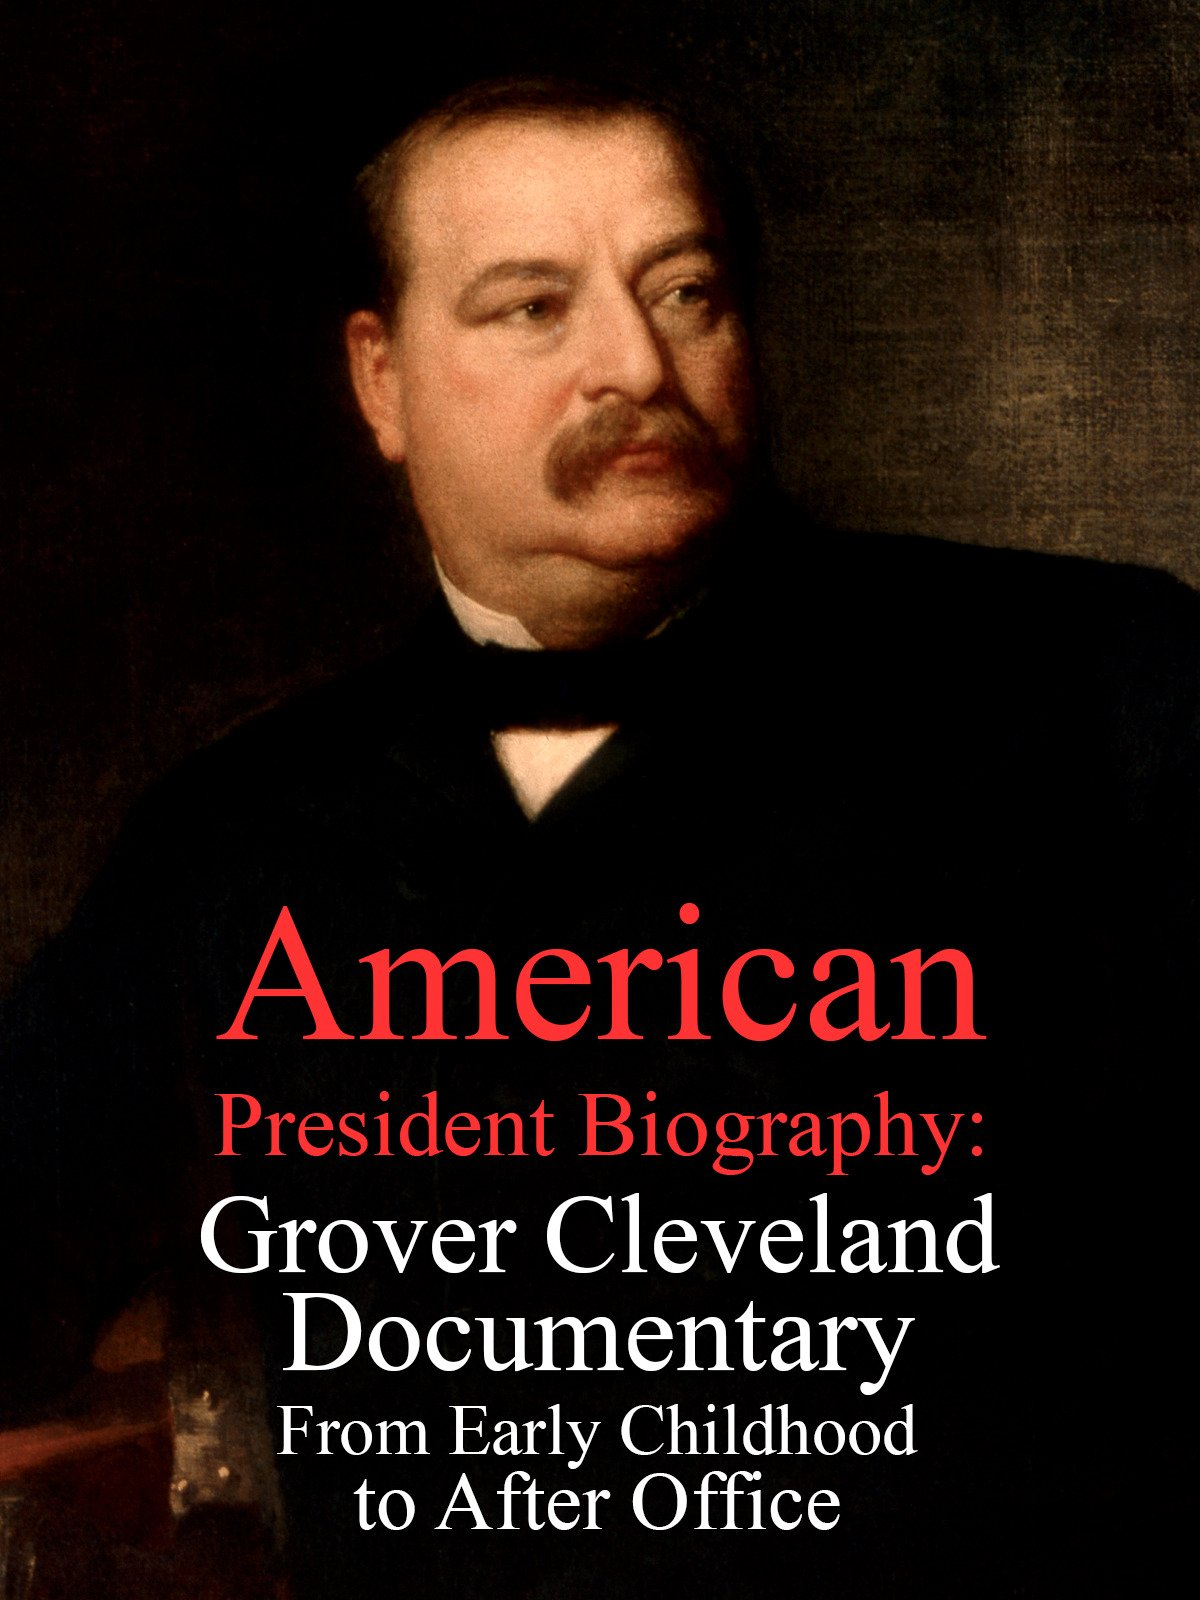 American President Biography: Grover Cleveland Documentary From Early Childhood to After Office